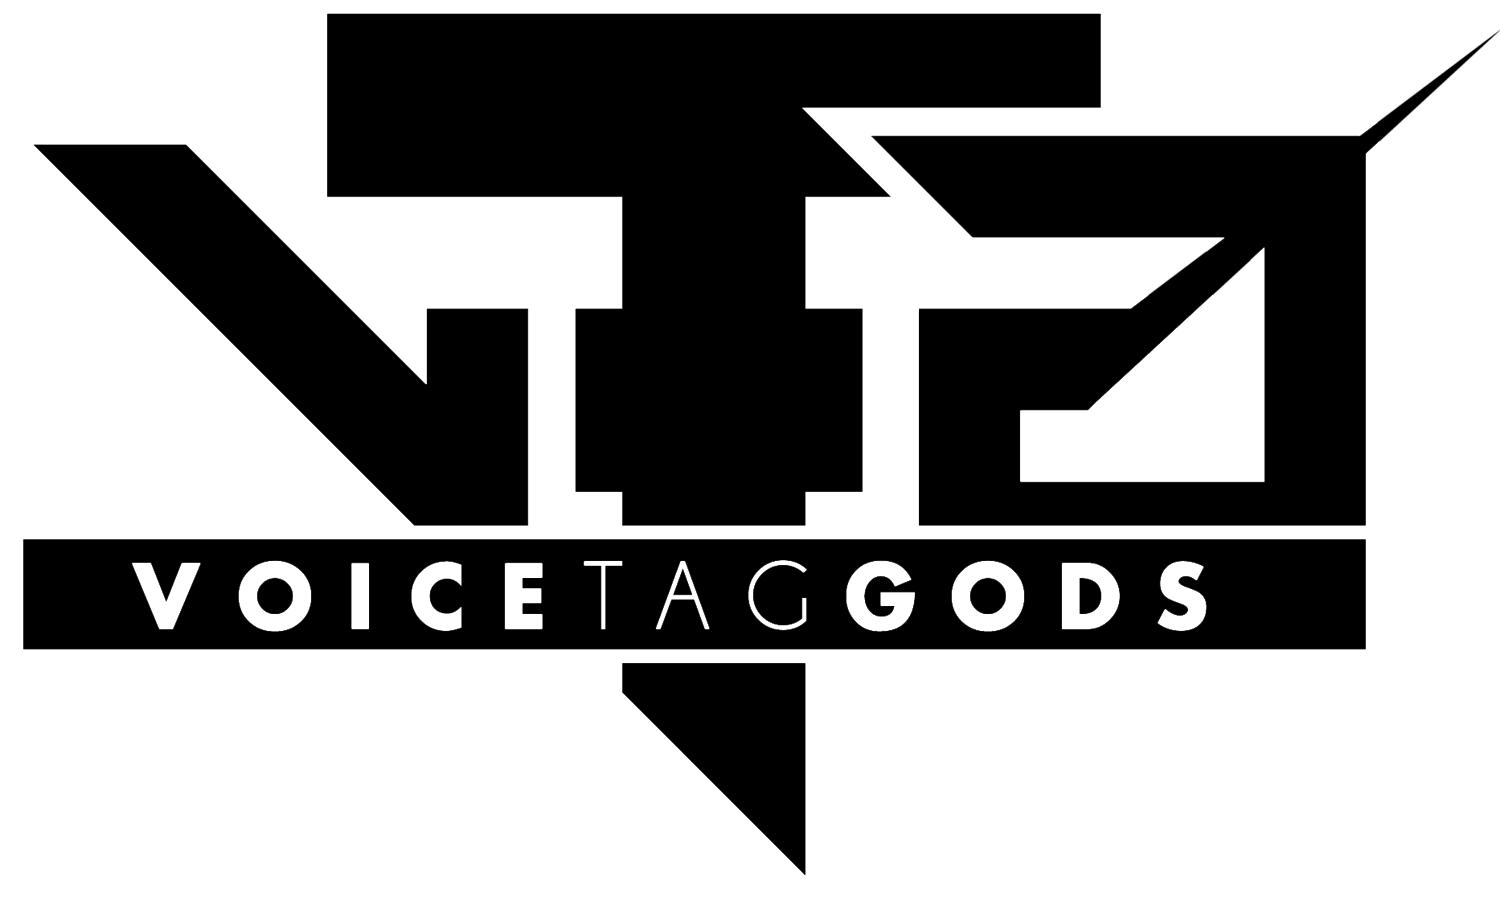 Voice Tag Gods | Protect Your Music & Mark Your Sound